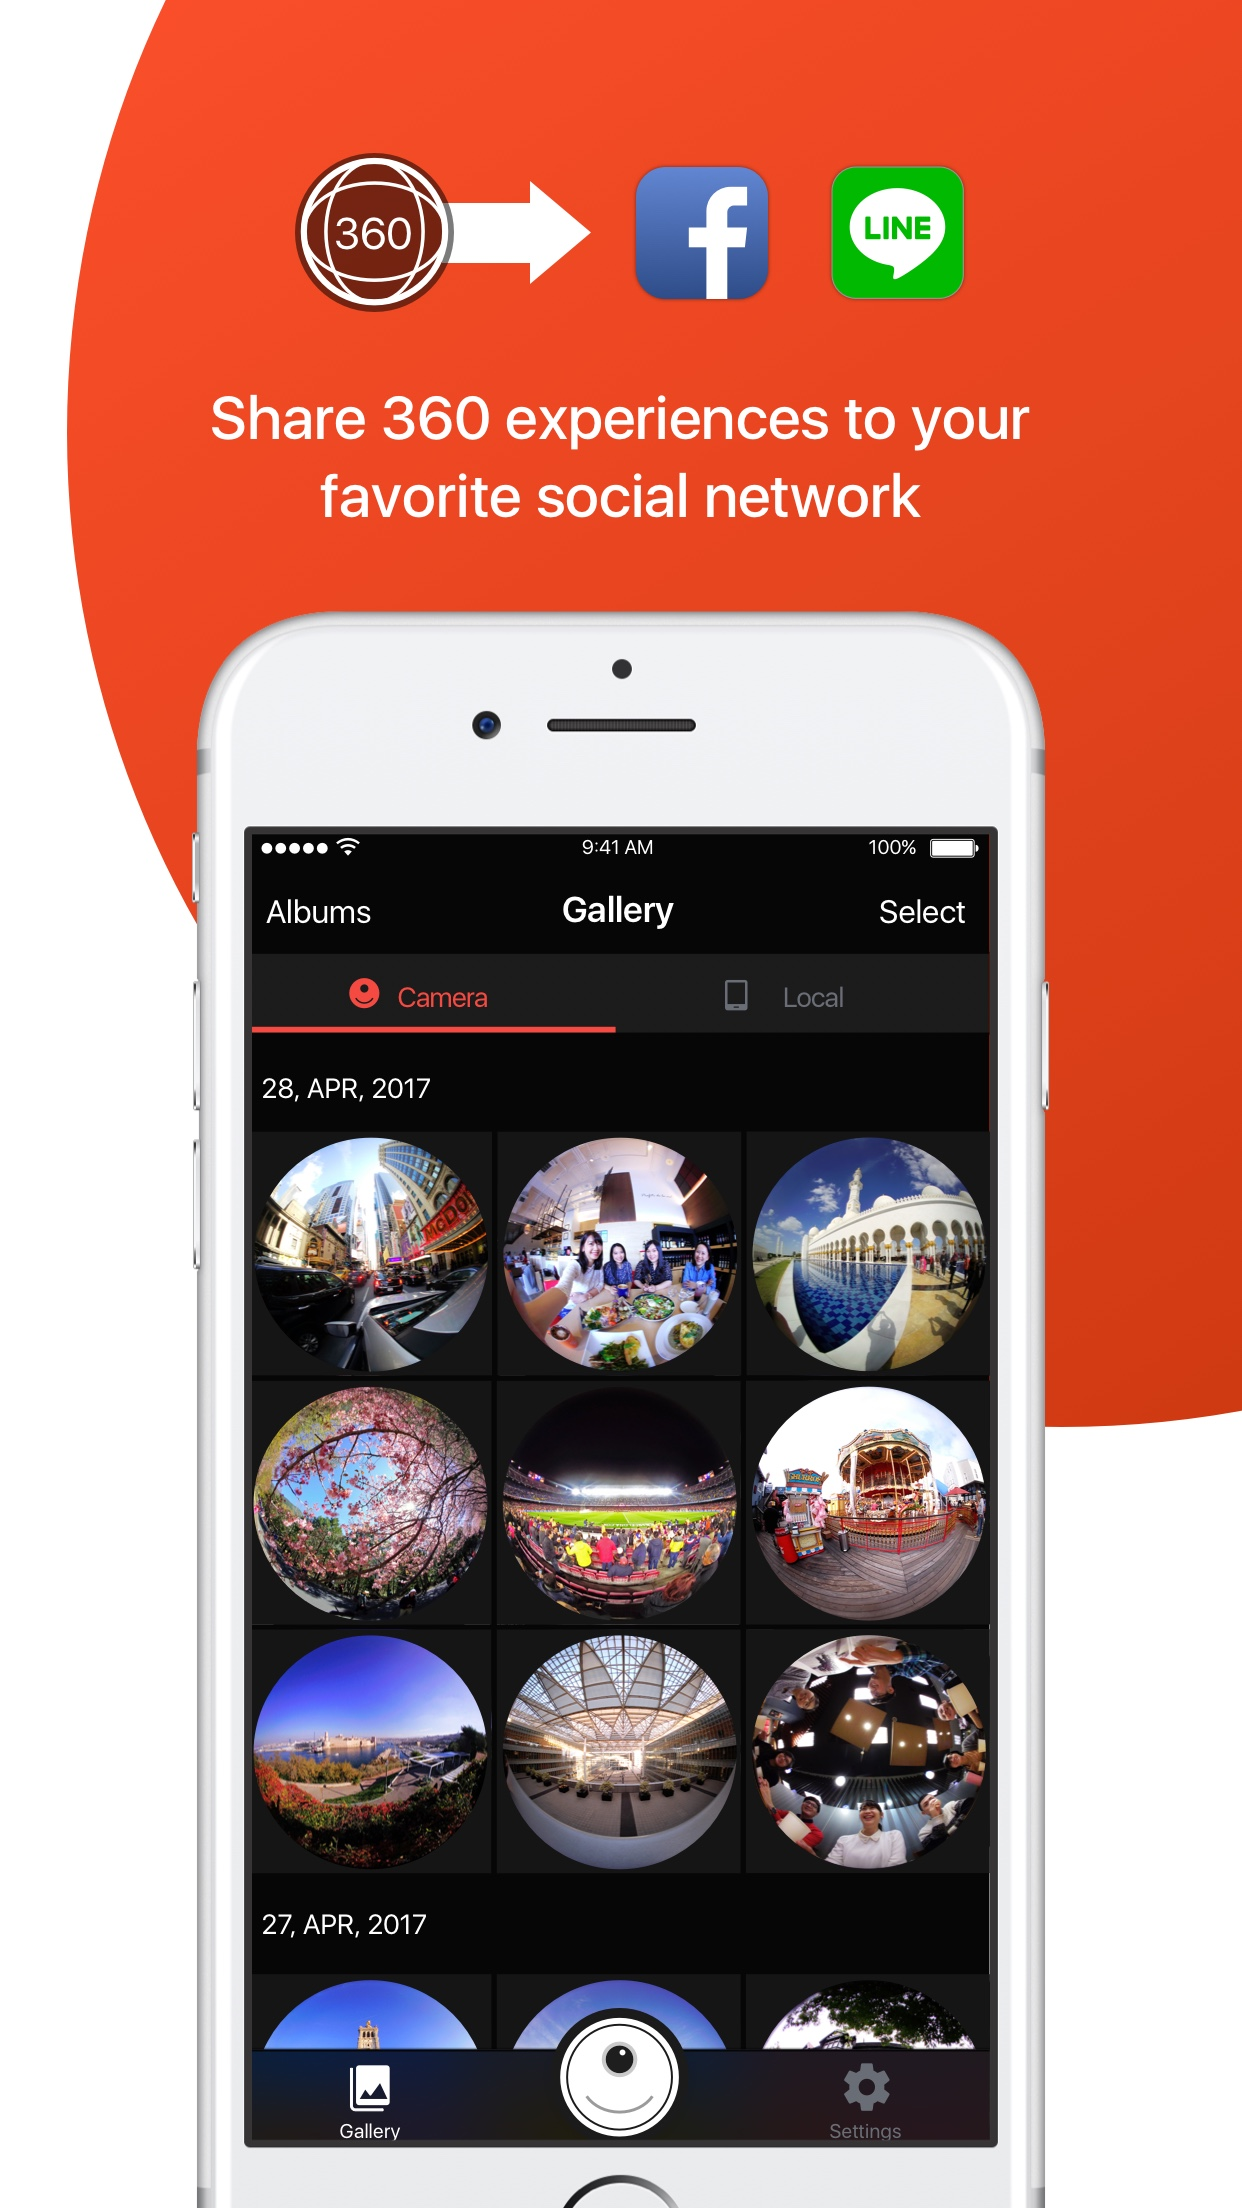 Share 360 experiences to your favorite social network